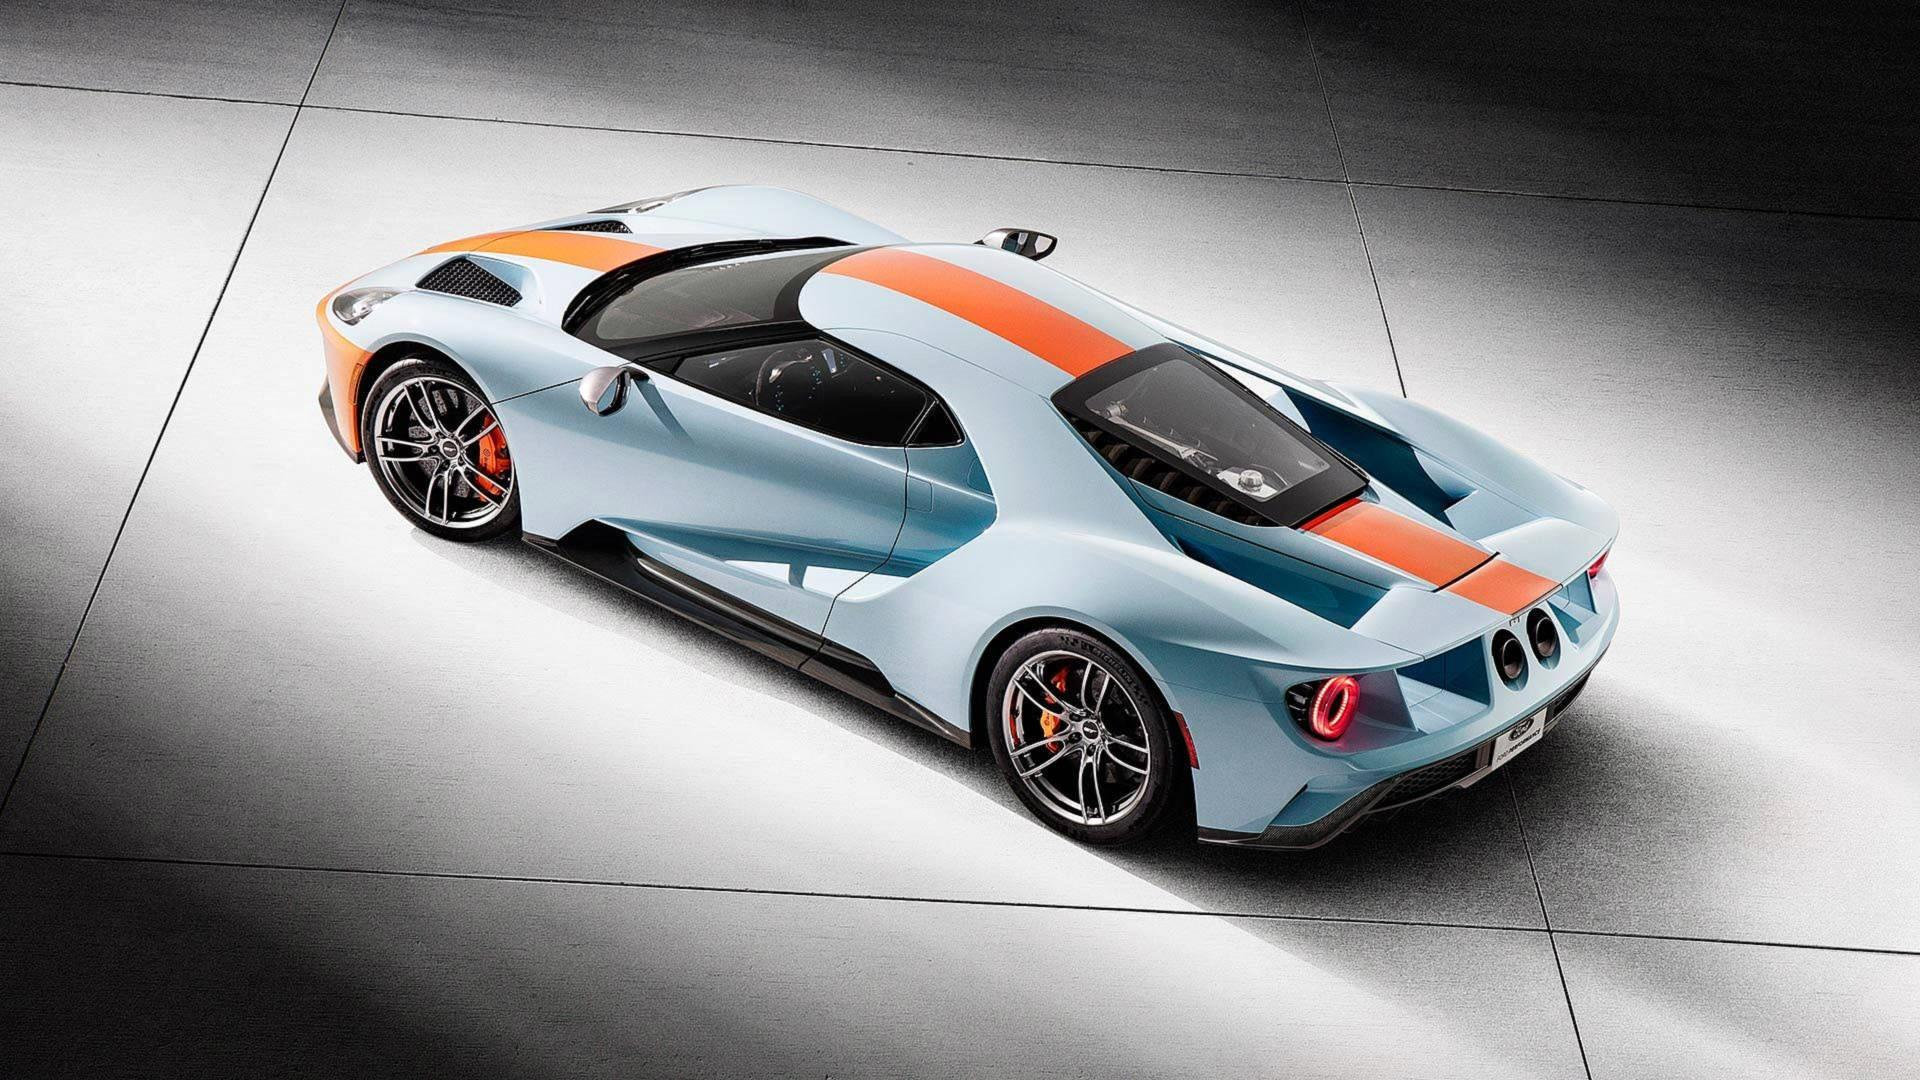 ford-devoile-une-livree-specifique-de-sa-gt-ford-gt-heritage-edition-gulf-862-4.jpg